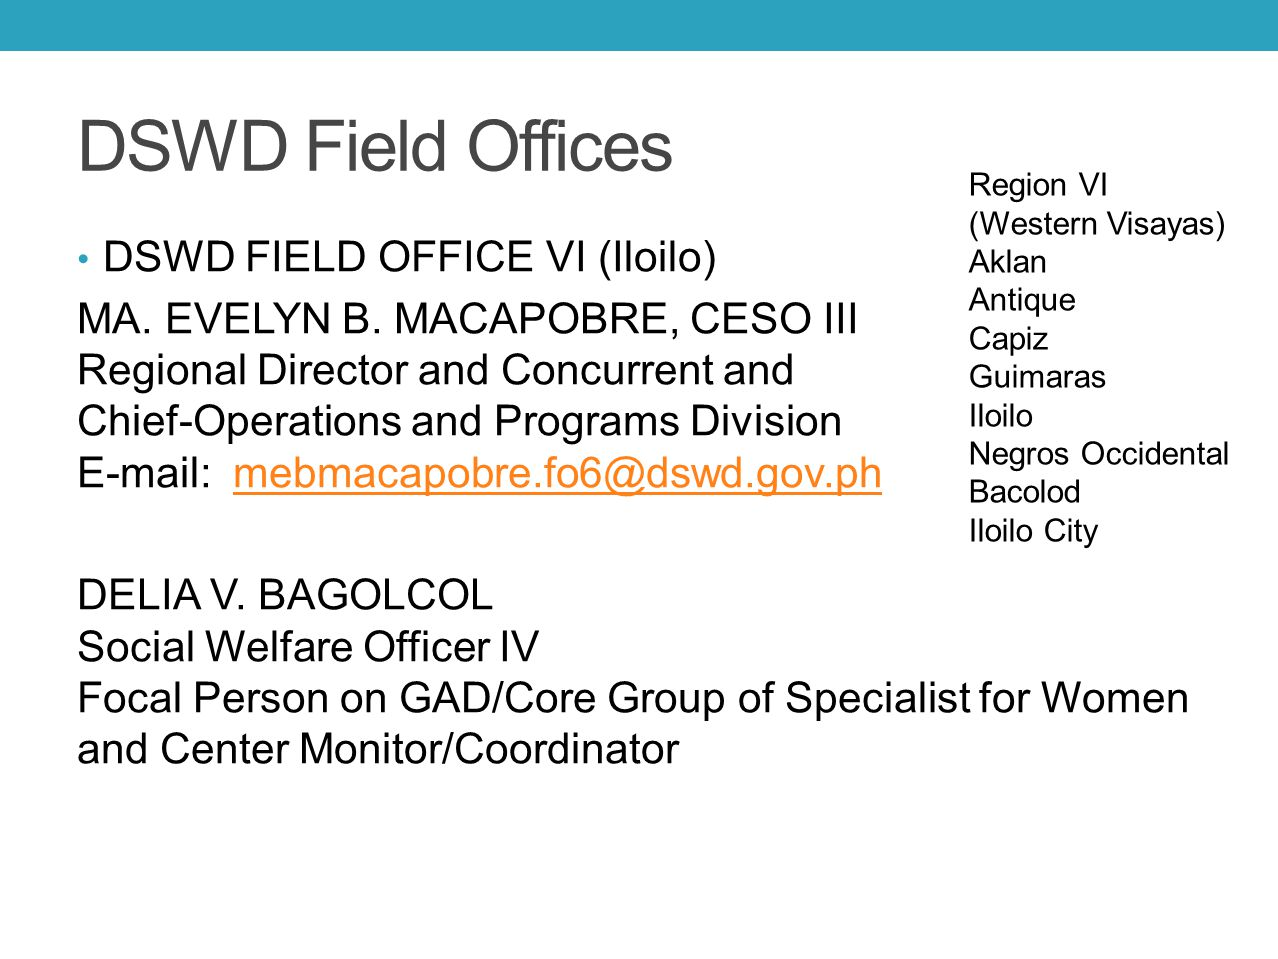 DSWD Field Offices DSWD FIELD OFFICE VI (Iloilo)